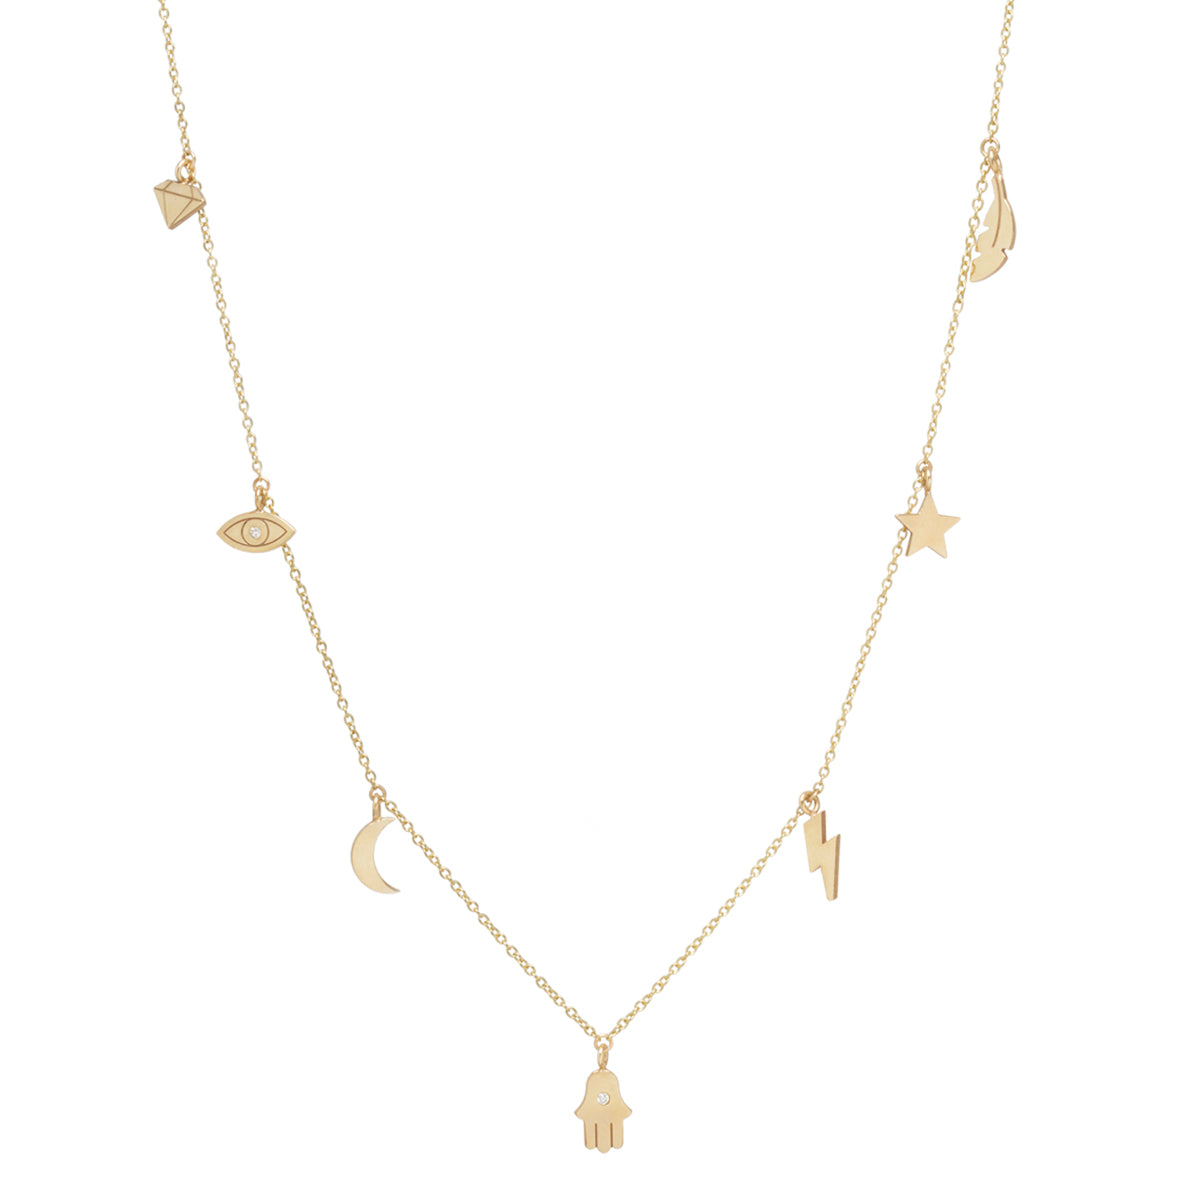 14k 7 dangling midi bitty charm necklace